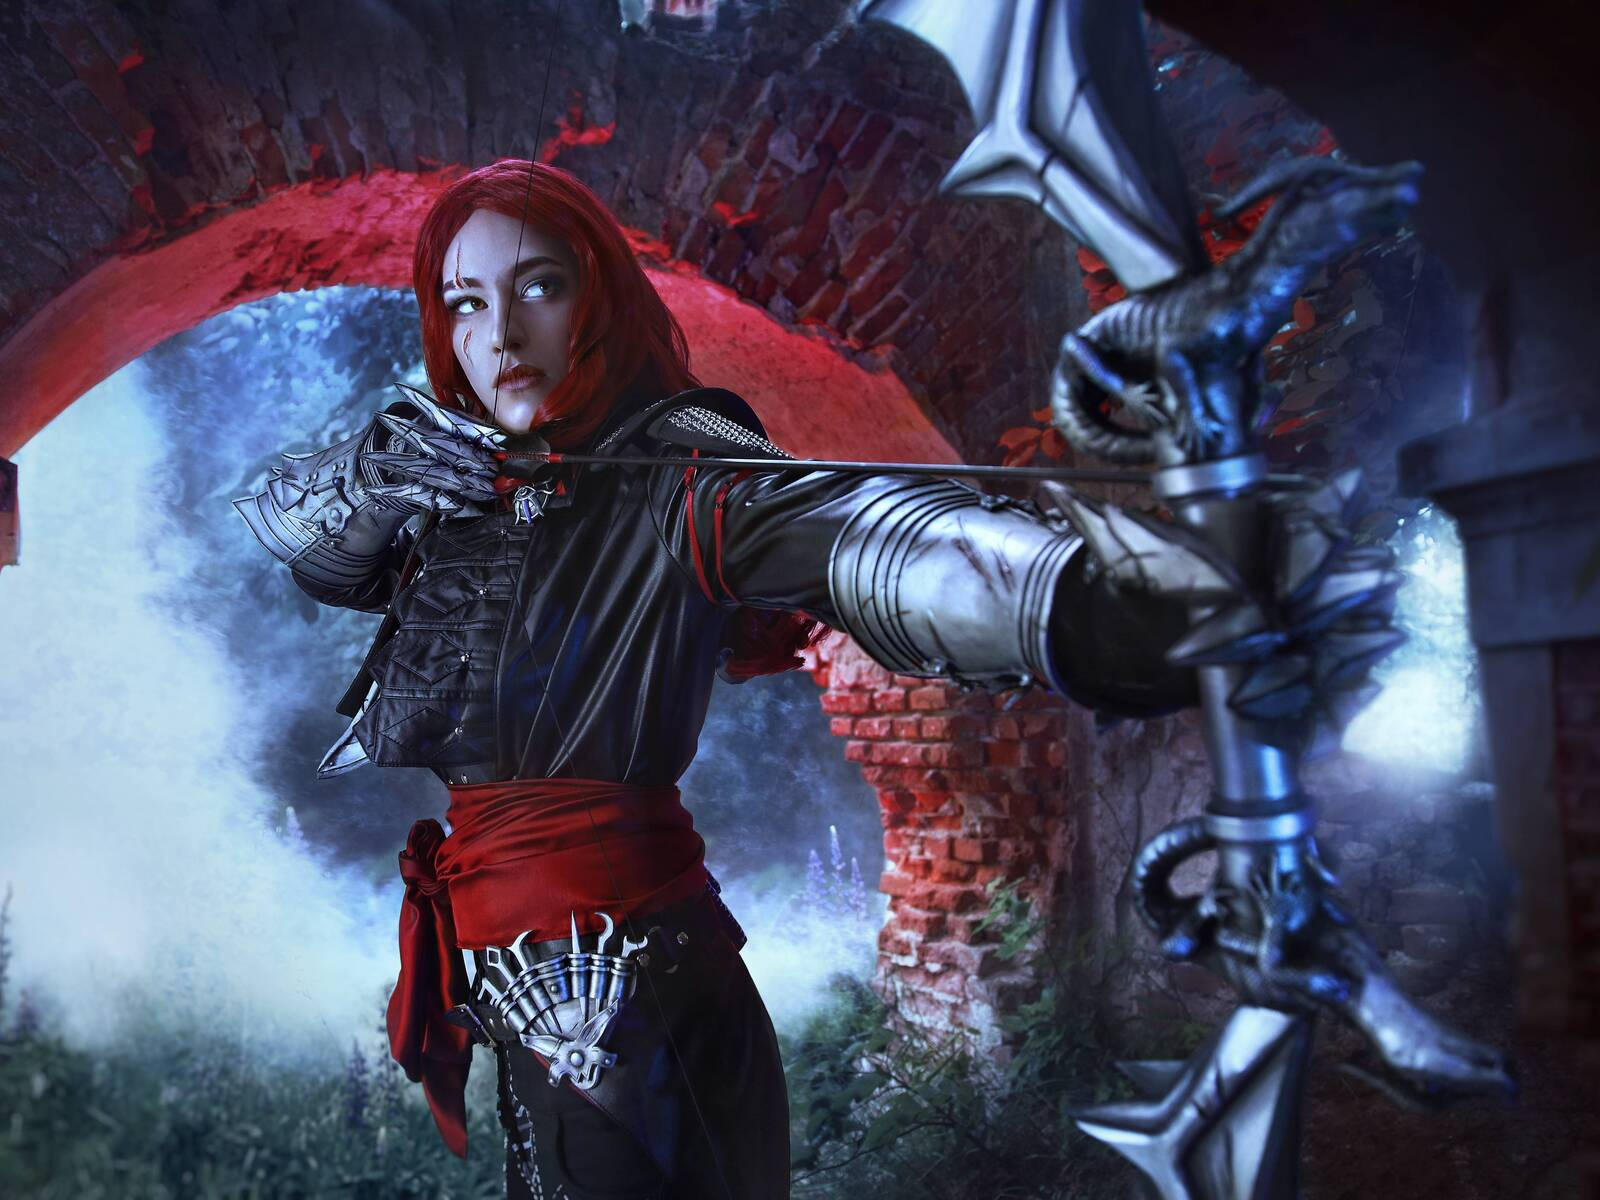 1600x1200 Dragon Age Inquisition Cosplay 1600x1200 Resolution Hd